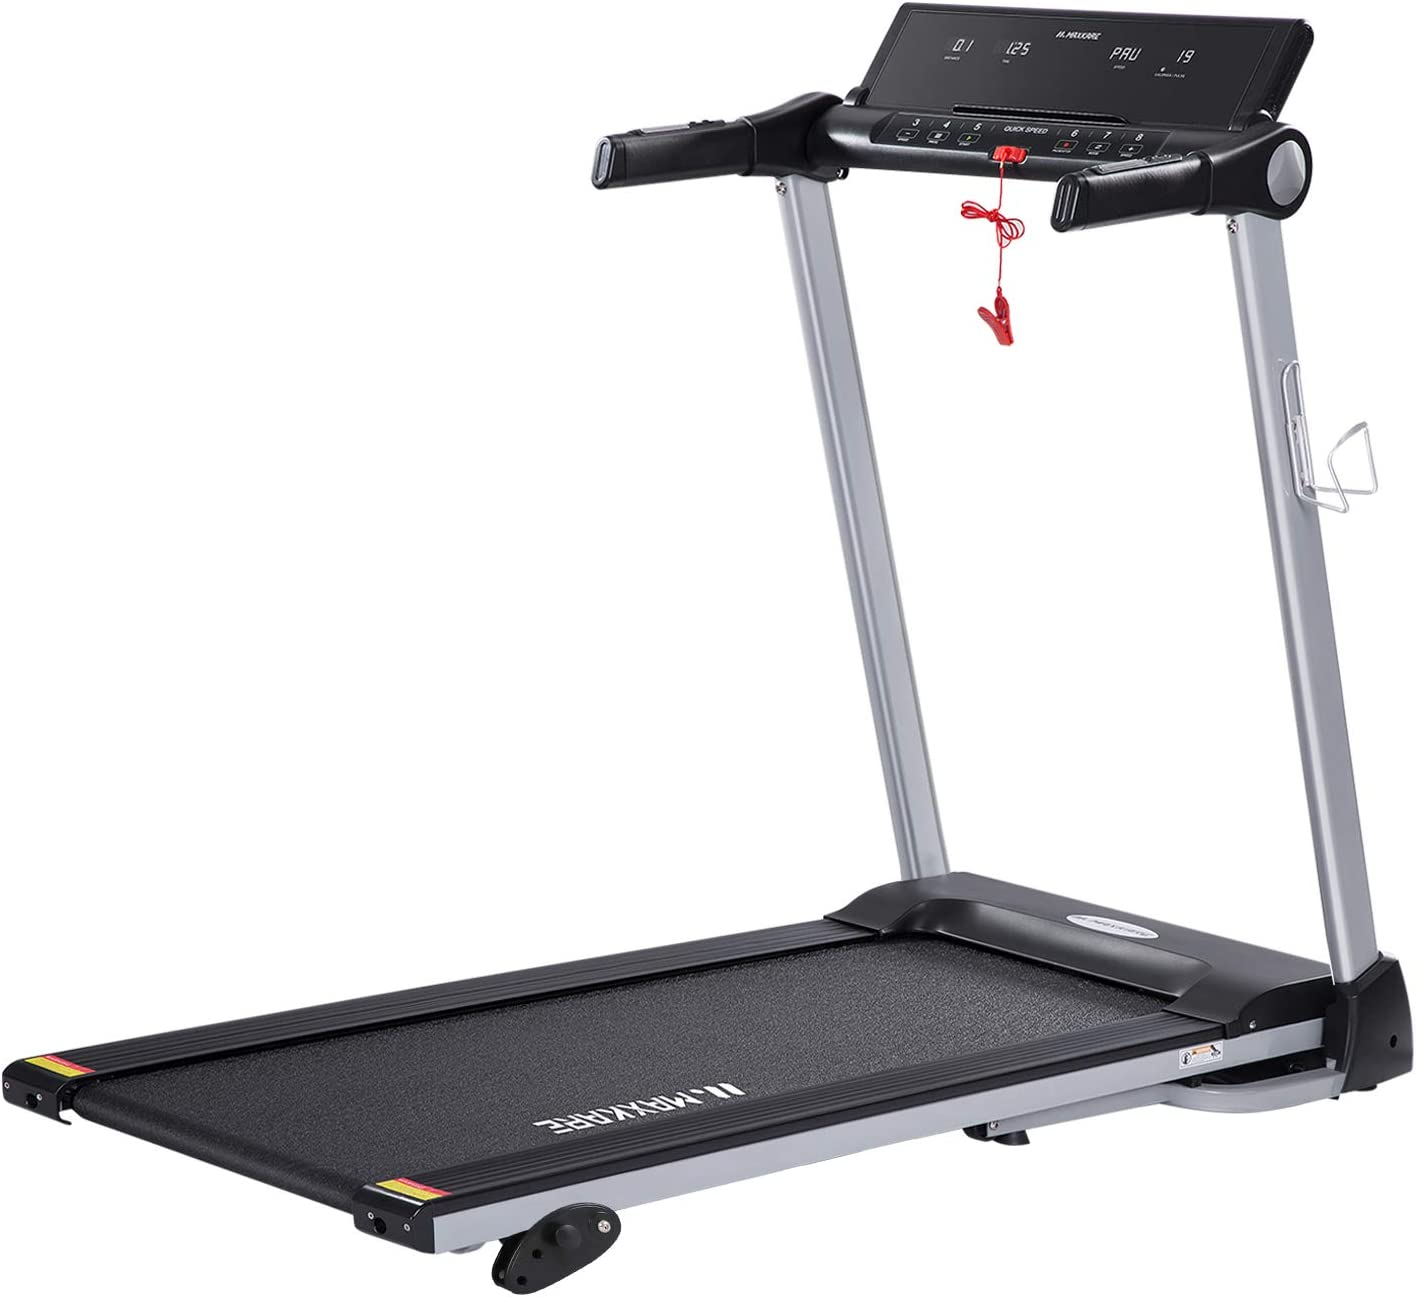 MaxKare Treadmill Portable Folding Home Run Exercise Machine with Manual Incline Electric Treadmill Workout with LCD Screen Cup Holder with 15 Pre-Set Programs 2.5HP Power Wide Tread Belt